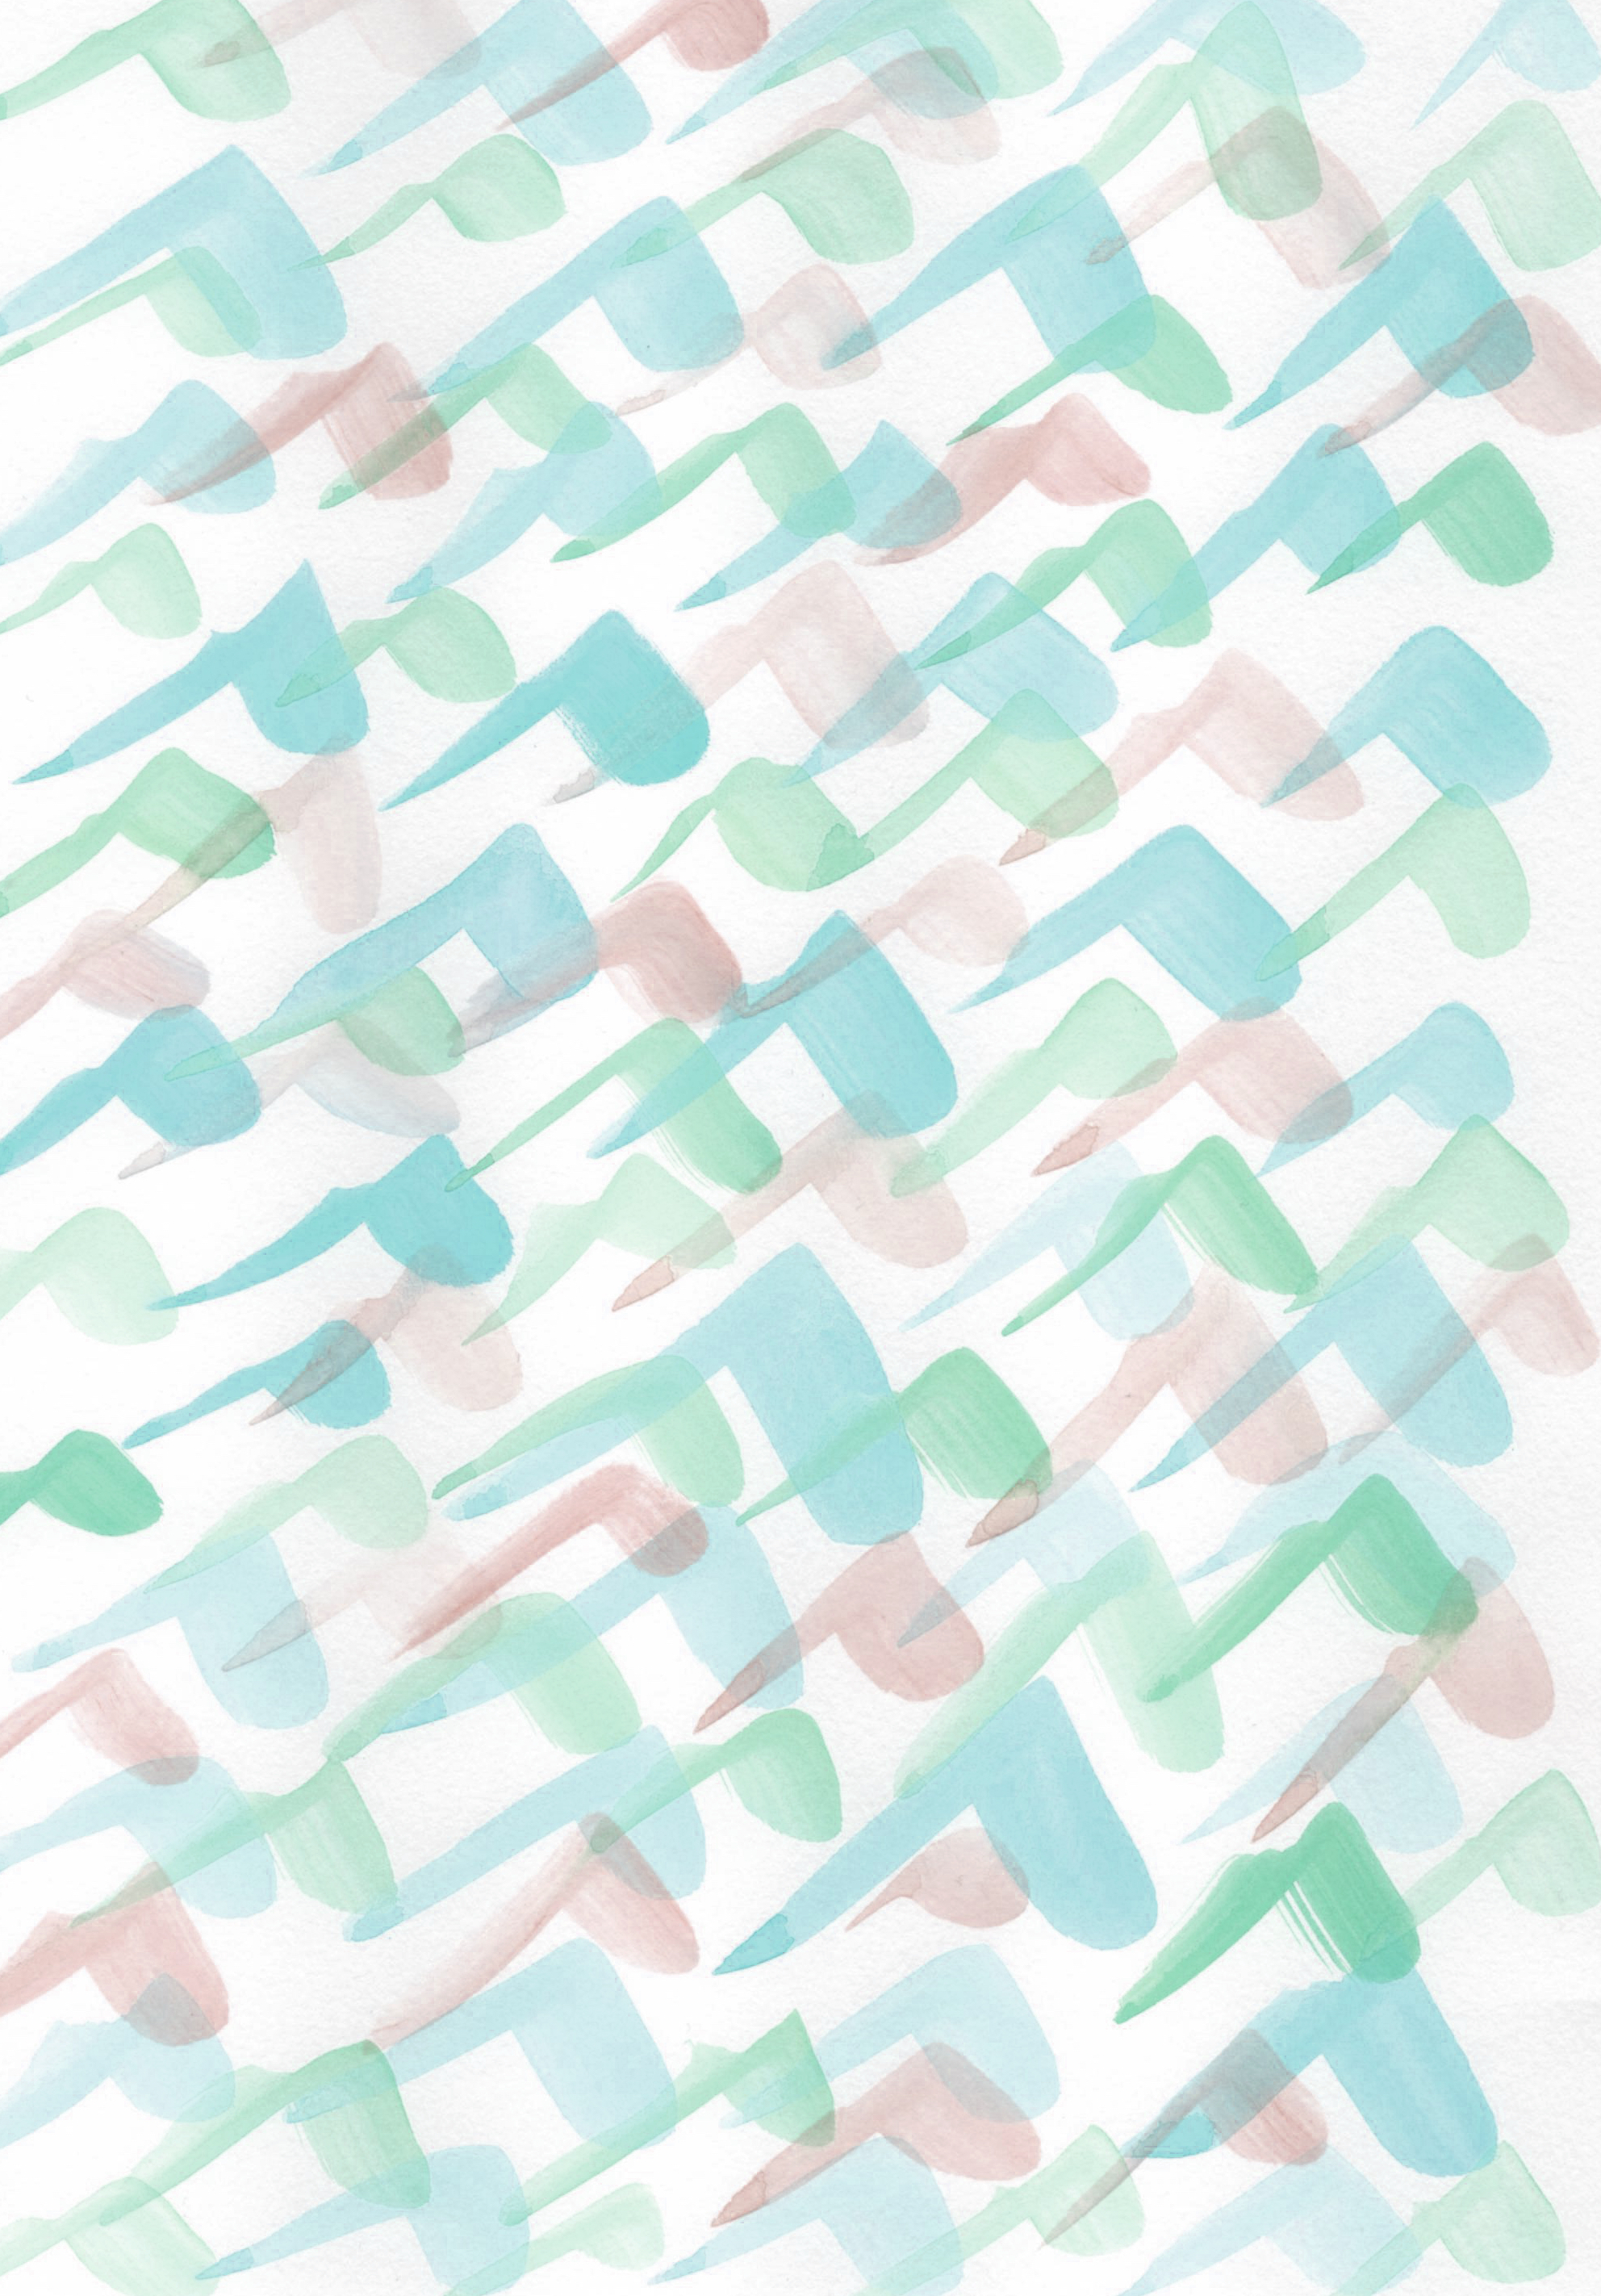 Triangle Patterns  Teal copy.jpg